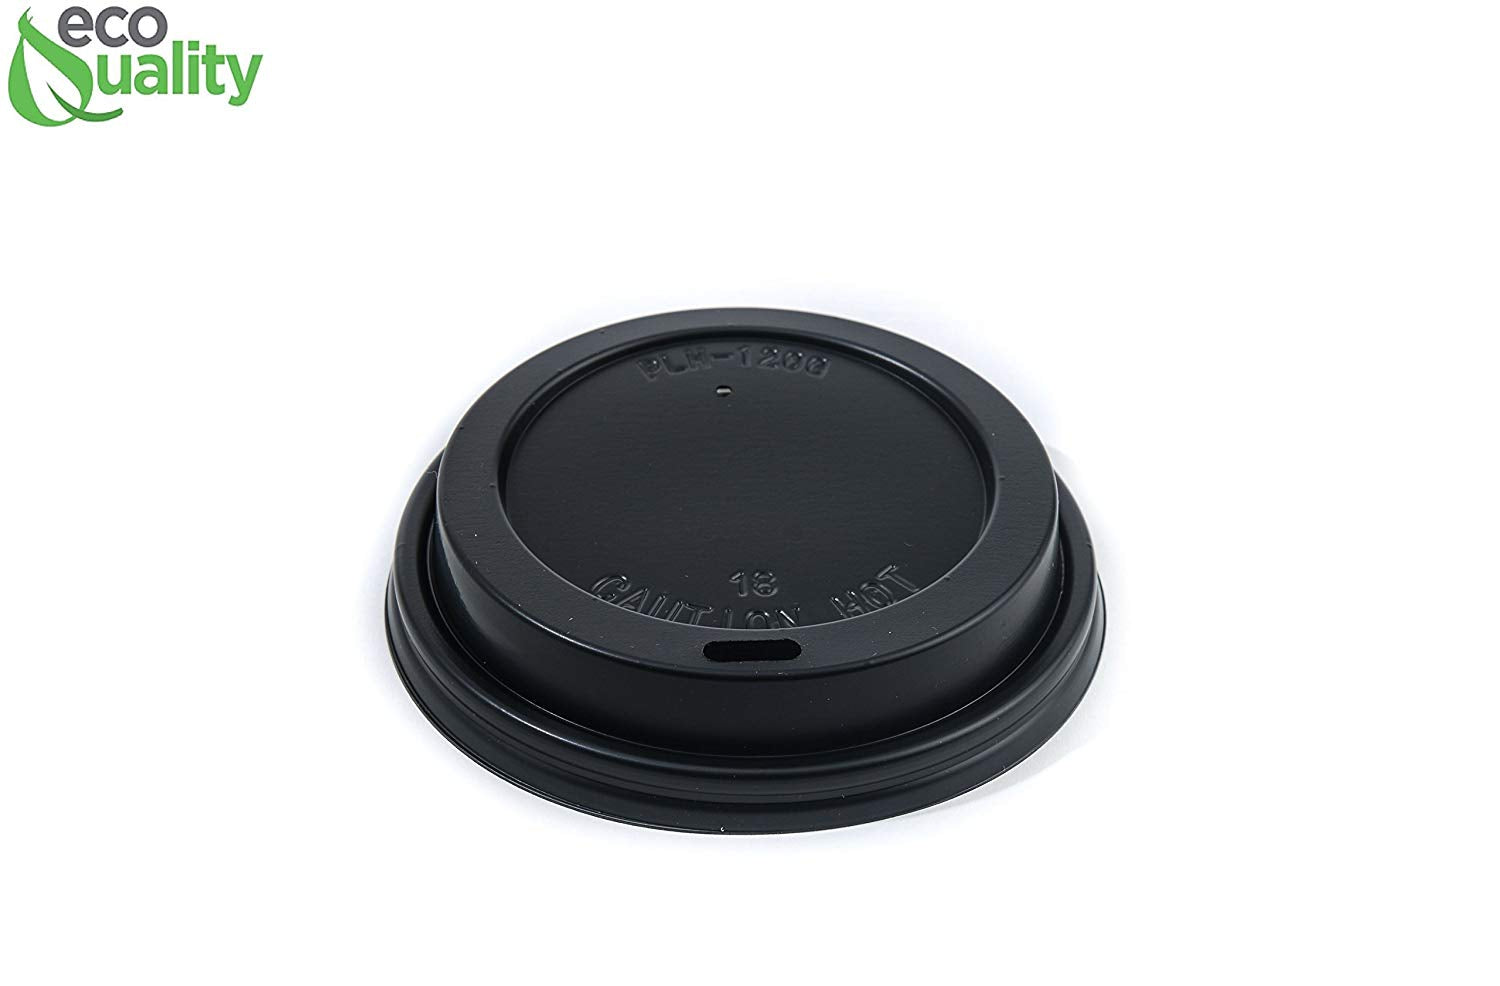 Disposable White Paper Coffee Cups with Black Dome Lids and Protective Corrugated Cup Sleeves